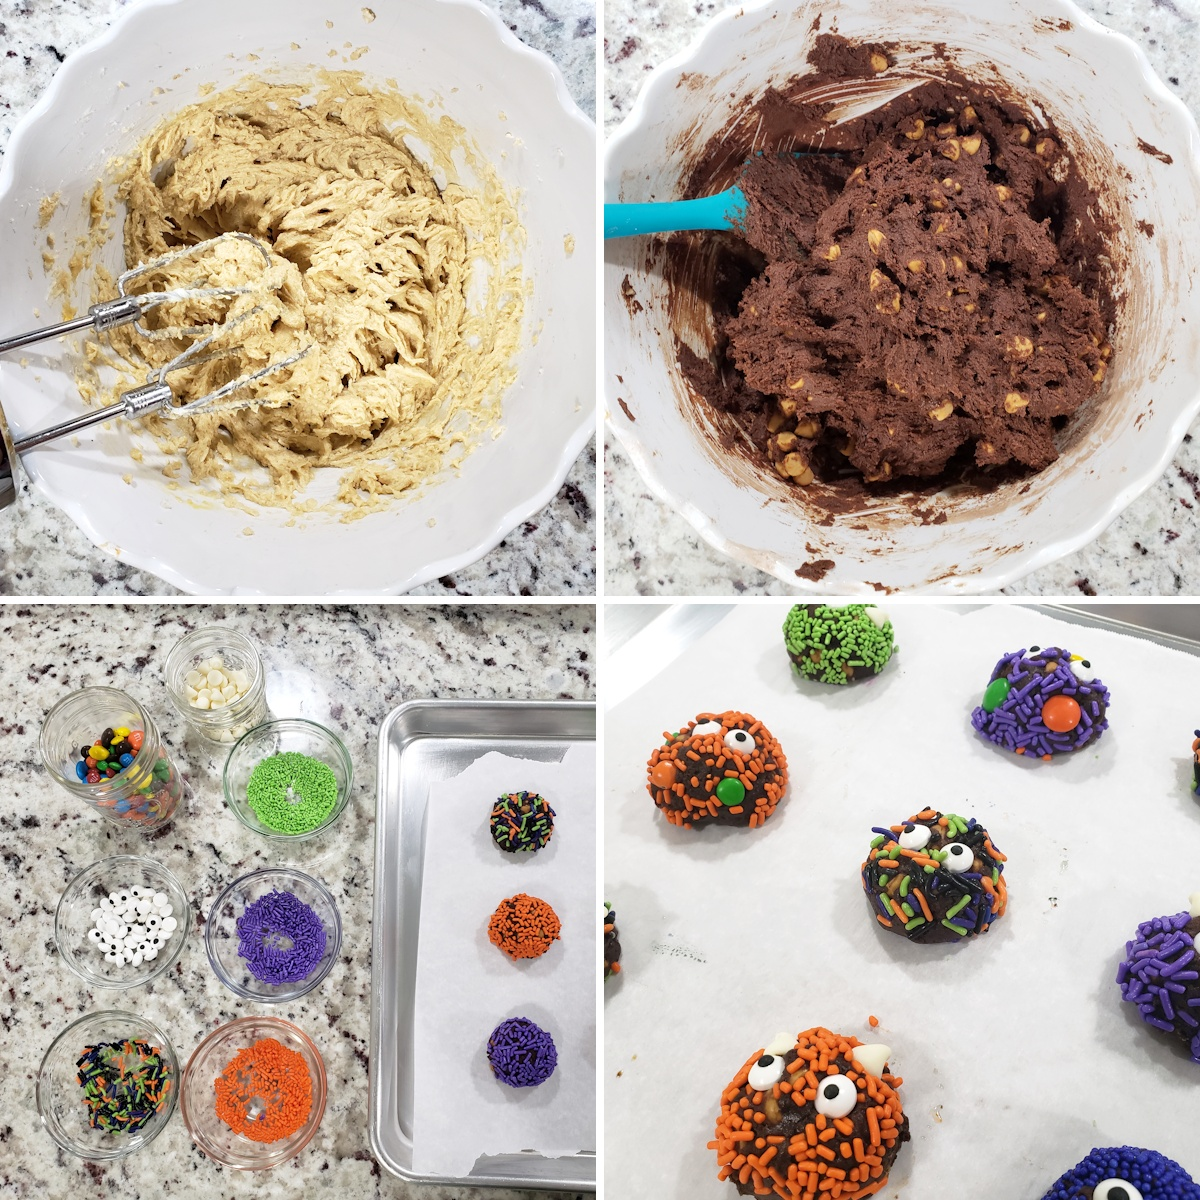 Mixing cookie dough and decorating cookie dough balls with sprinkles on a baking sheet.